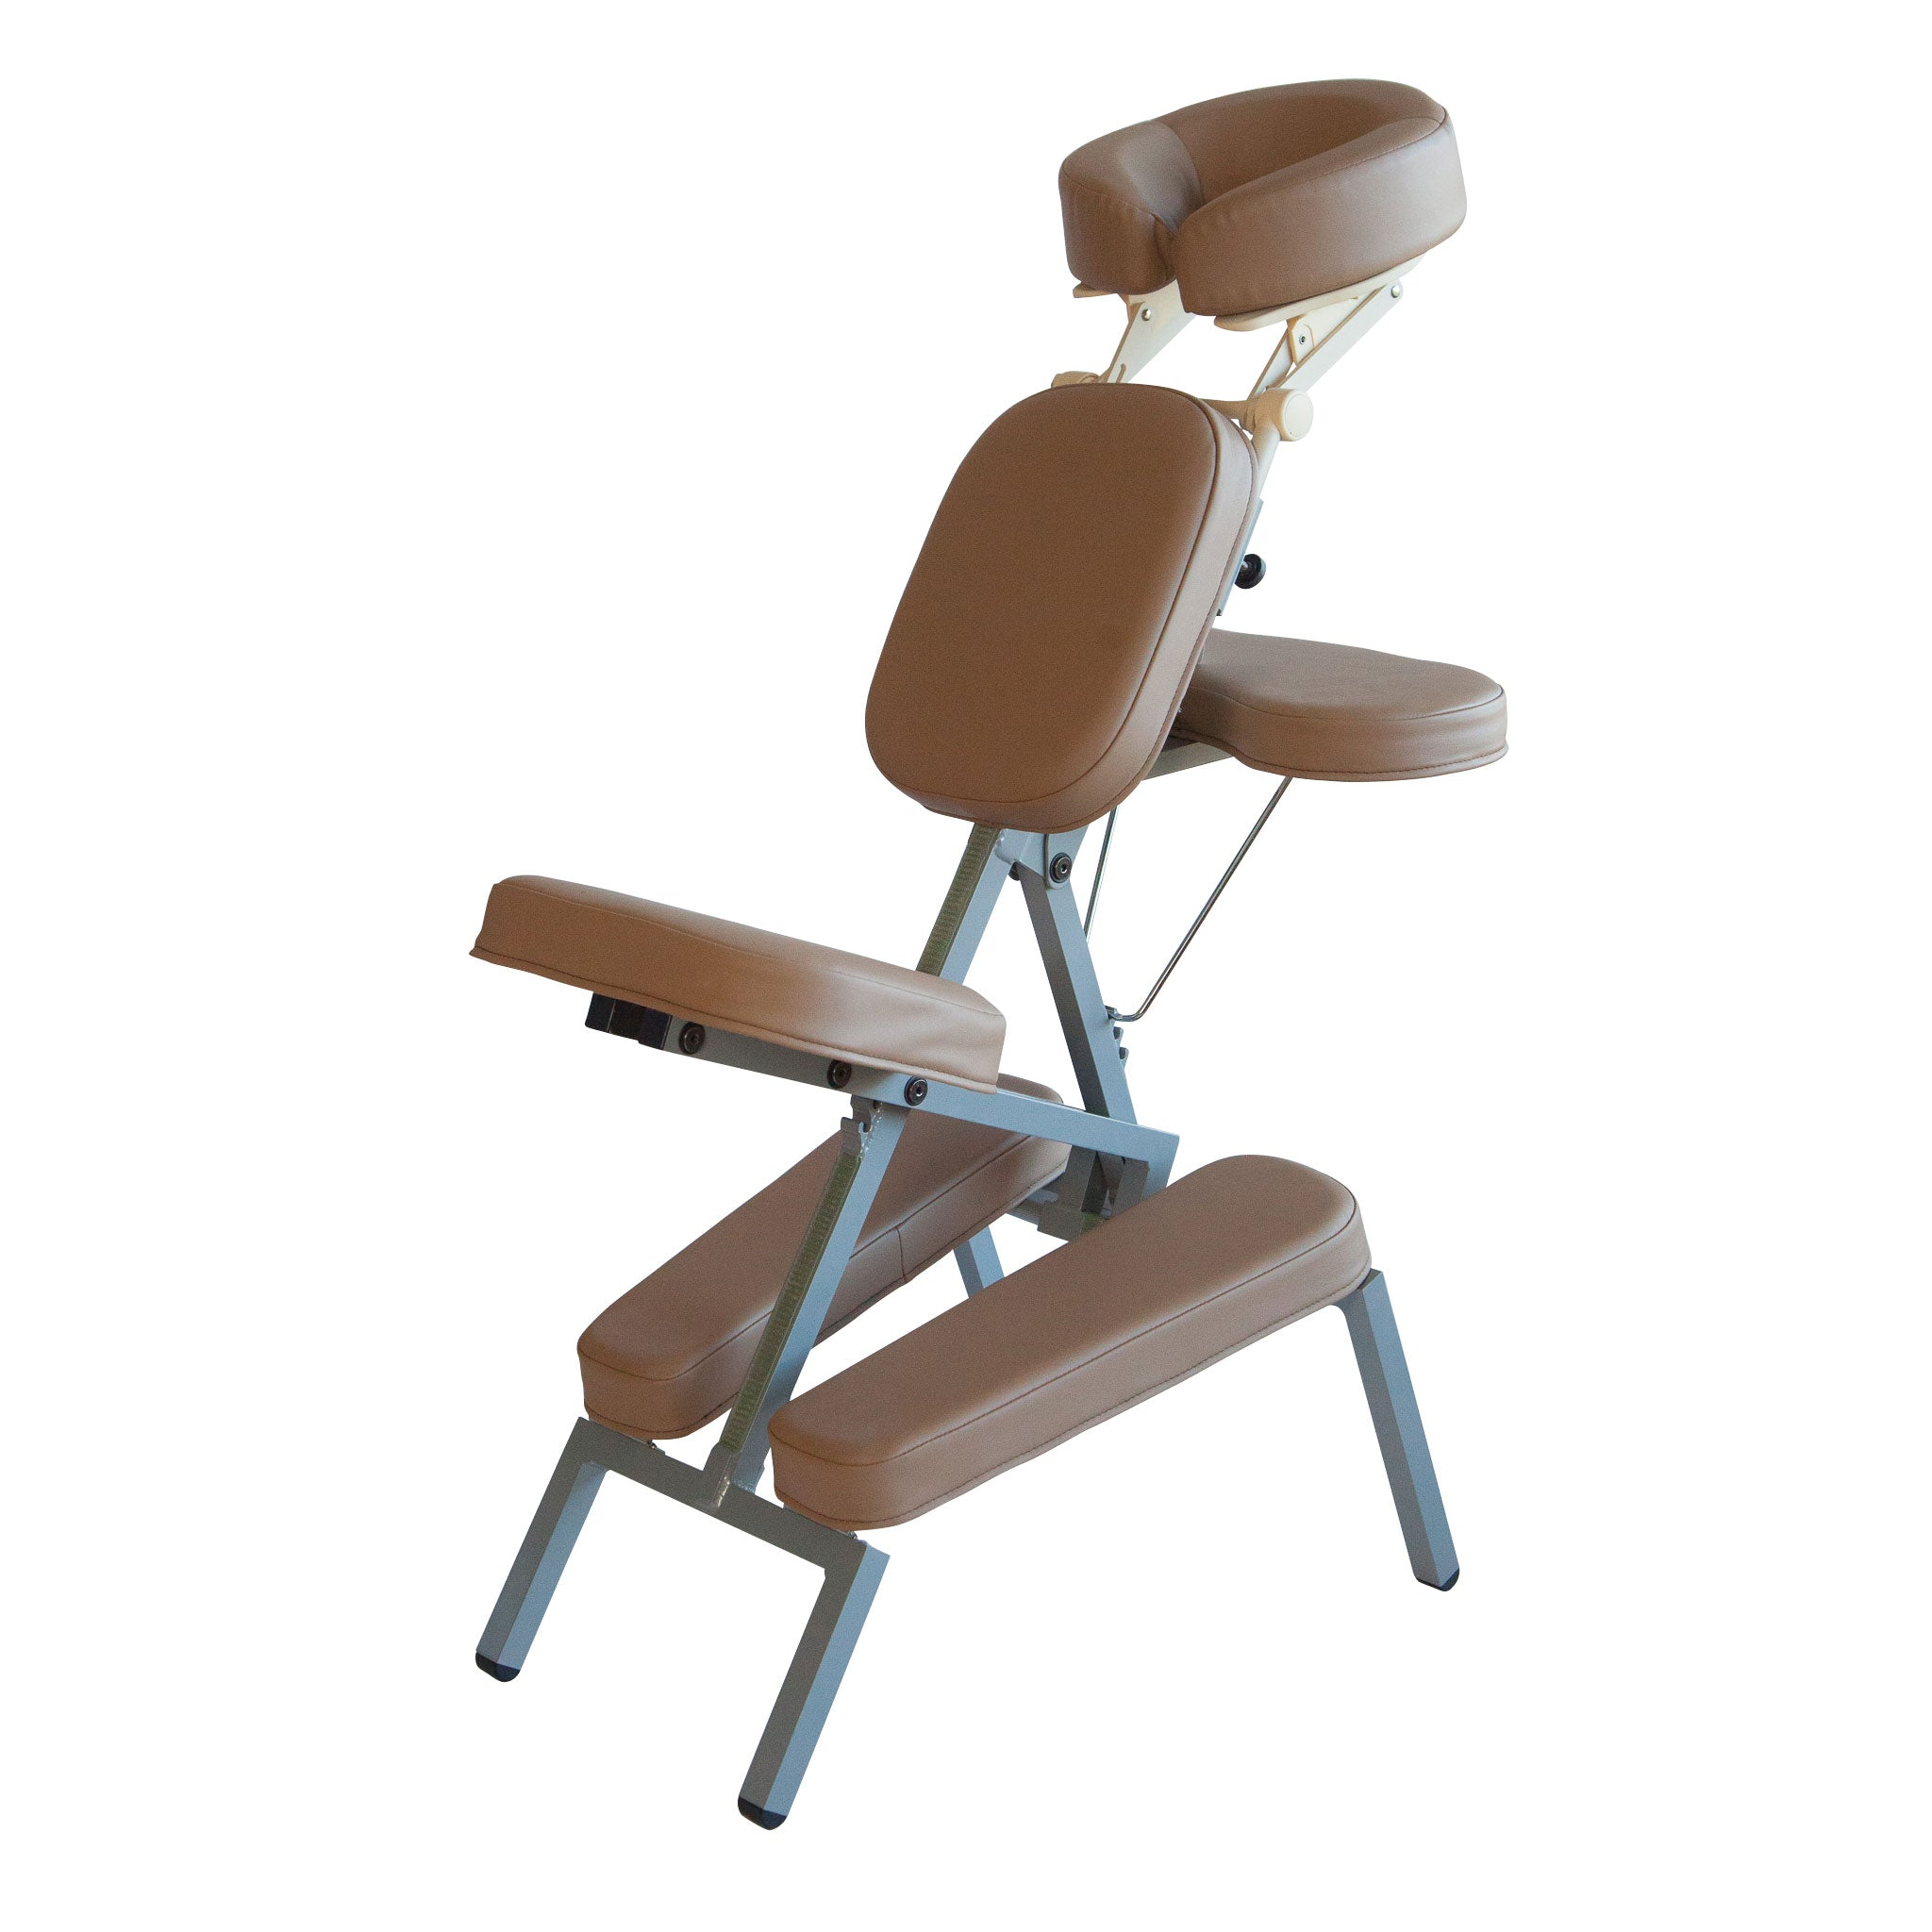 Portable Massage Chair & Wheeled Case